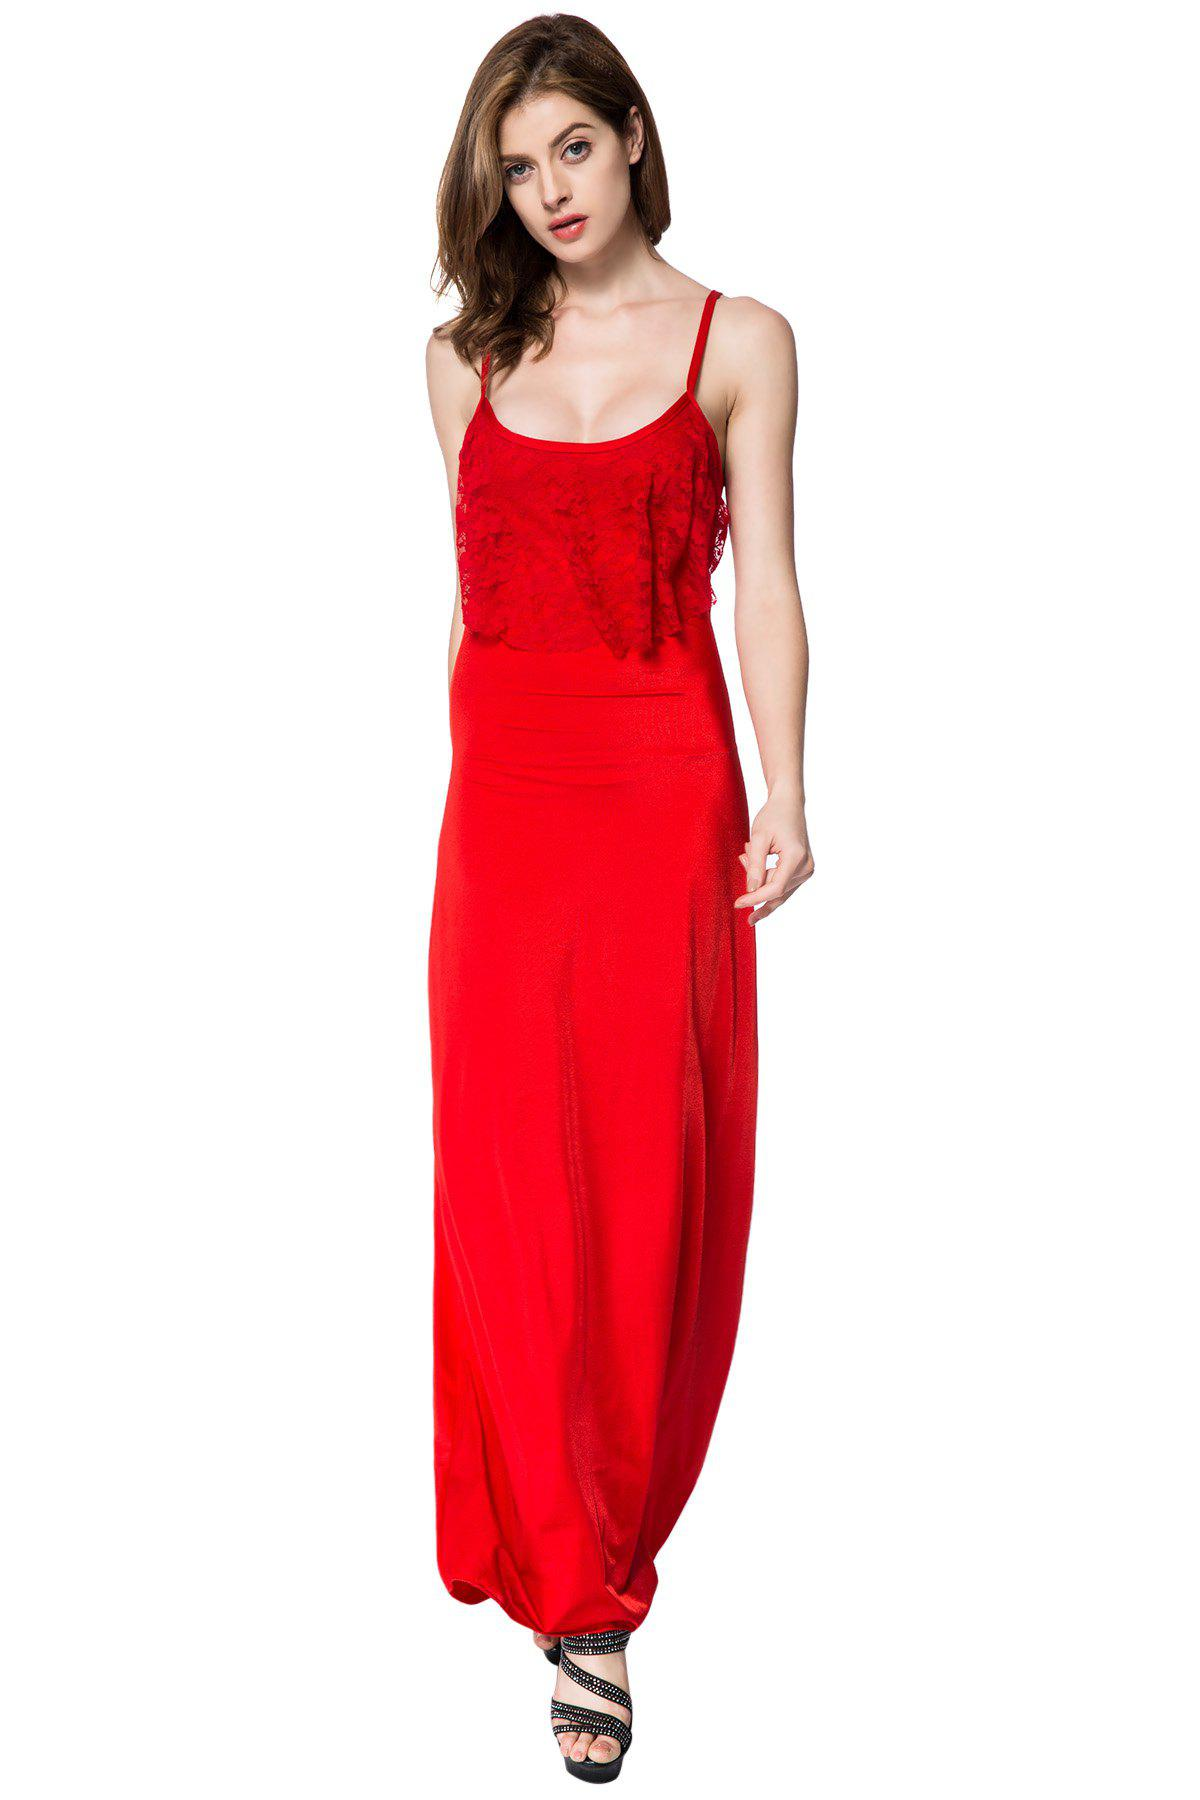 Summer Alluring Spaghetti Strap Sleeveless Solid Color Spliced Women's Dress - RED M